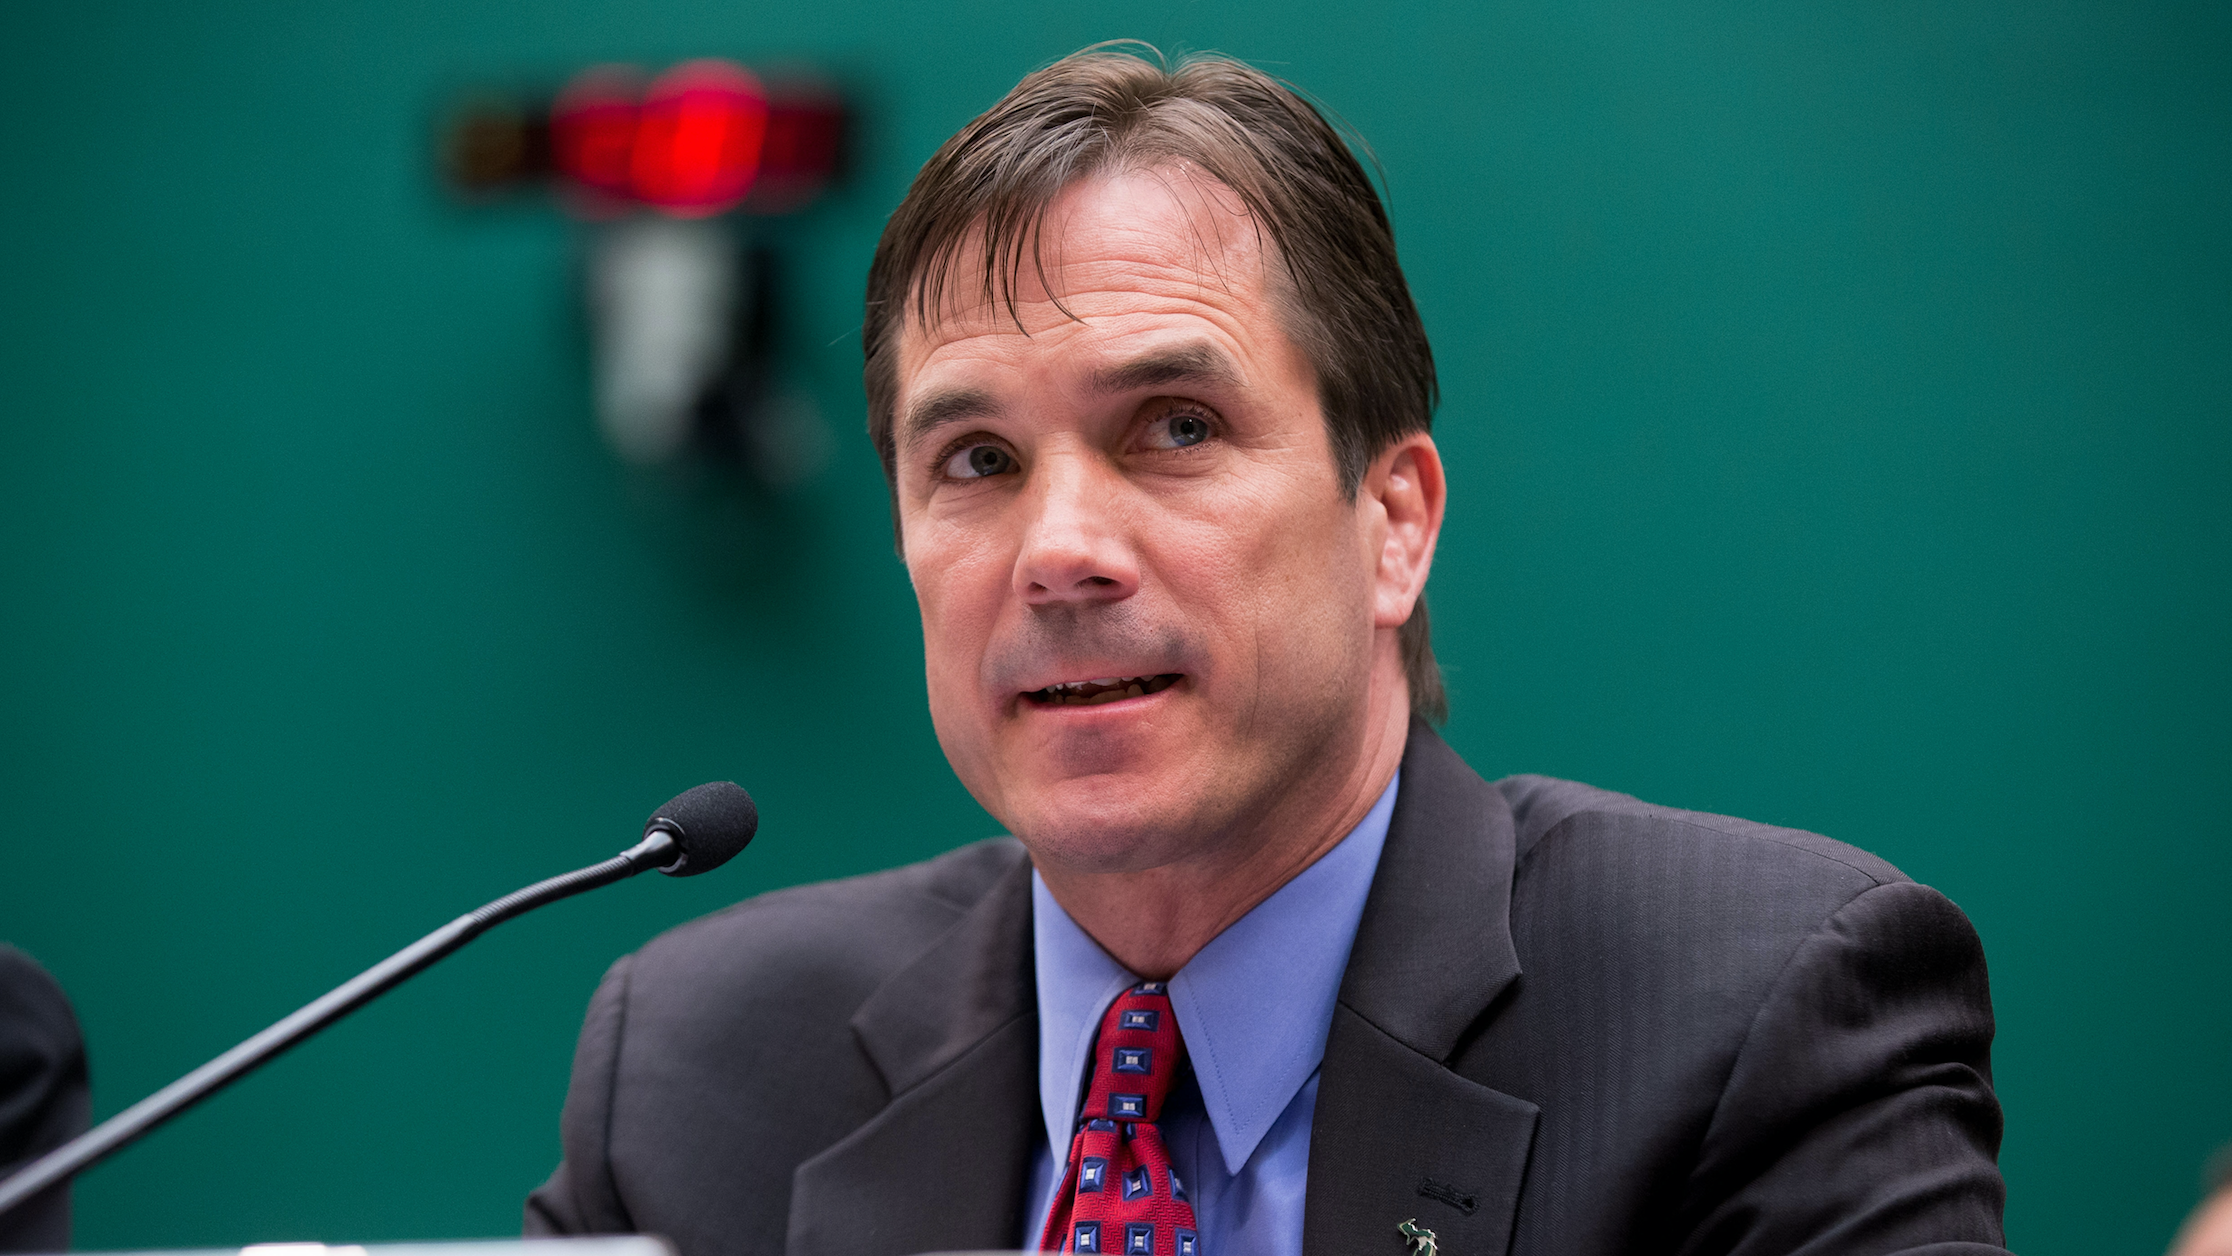 Director Of Michigan's Health Department Faces Involuntary Manslaughter Charge Over Flint Water Crisis